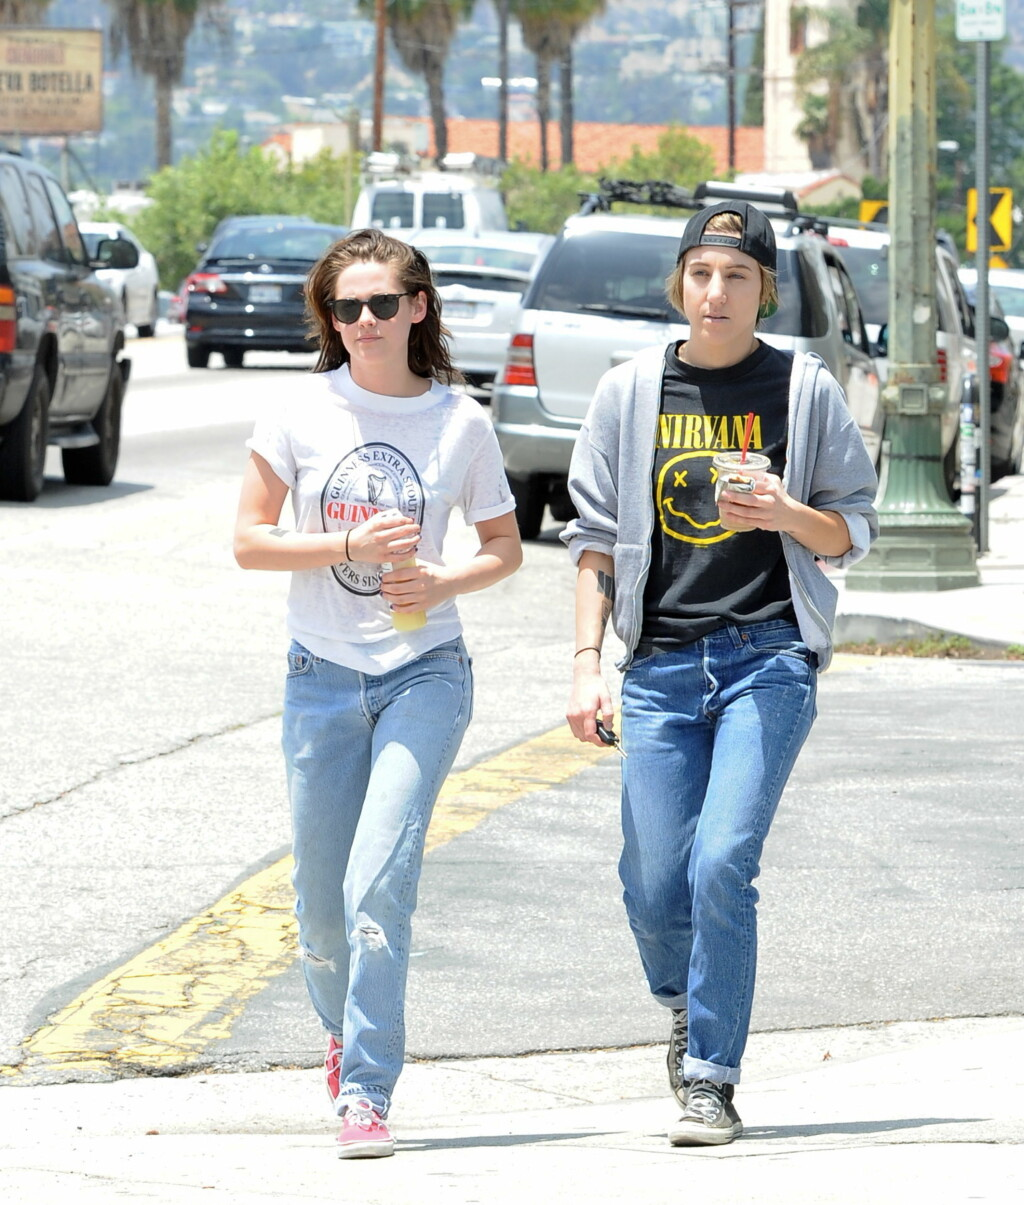 LYKKELIG IGJEN: Ifølge amerikansk presse skal Kristen ha forelsket seg i Alicia Cargile. Her er de to på spasertur sammen i Silverlake i Los Angeles. Featuring: Kristen Stewart, Alicia Cargile Where: Los Angeles, California, United States When: 06 Jun 2015 Credit: Cousart/JFXimages/WENN.com Foto: wenn.com